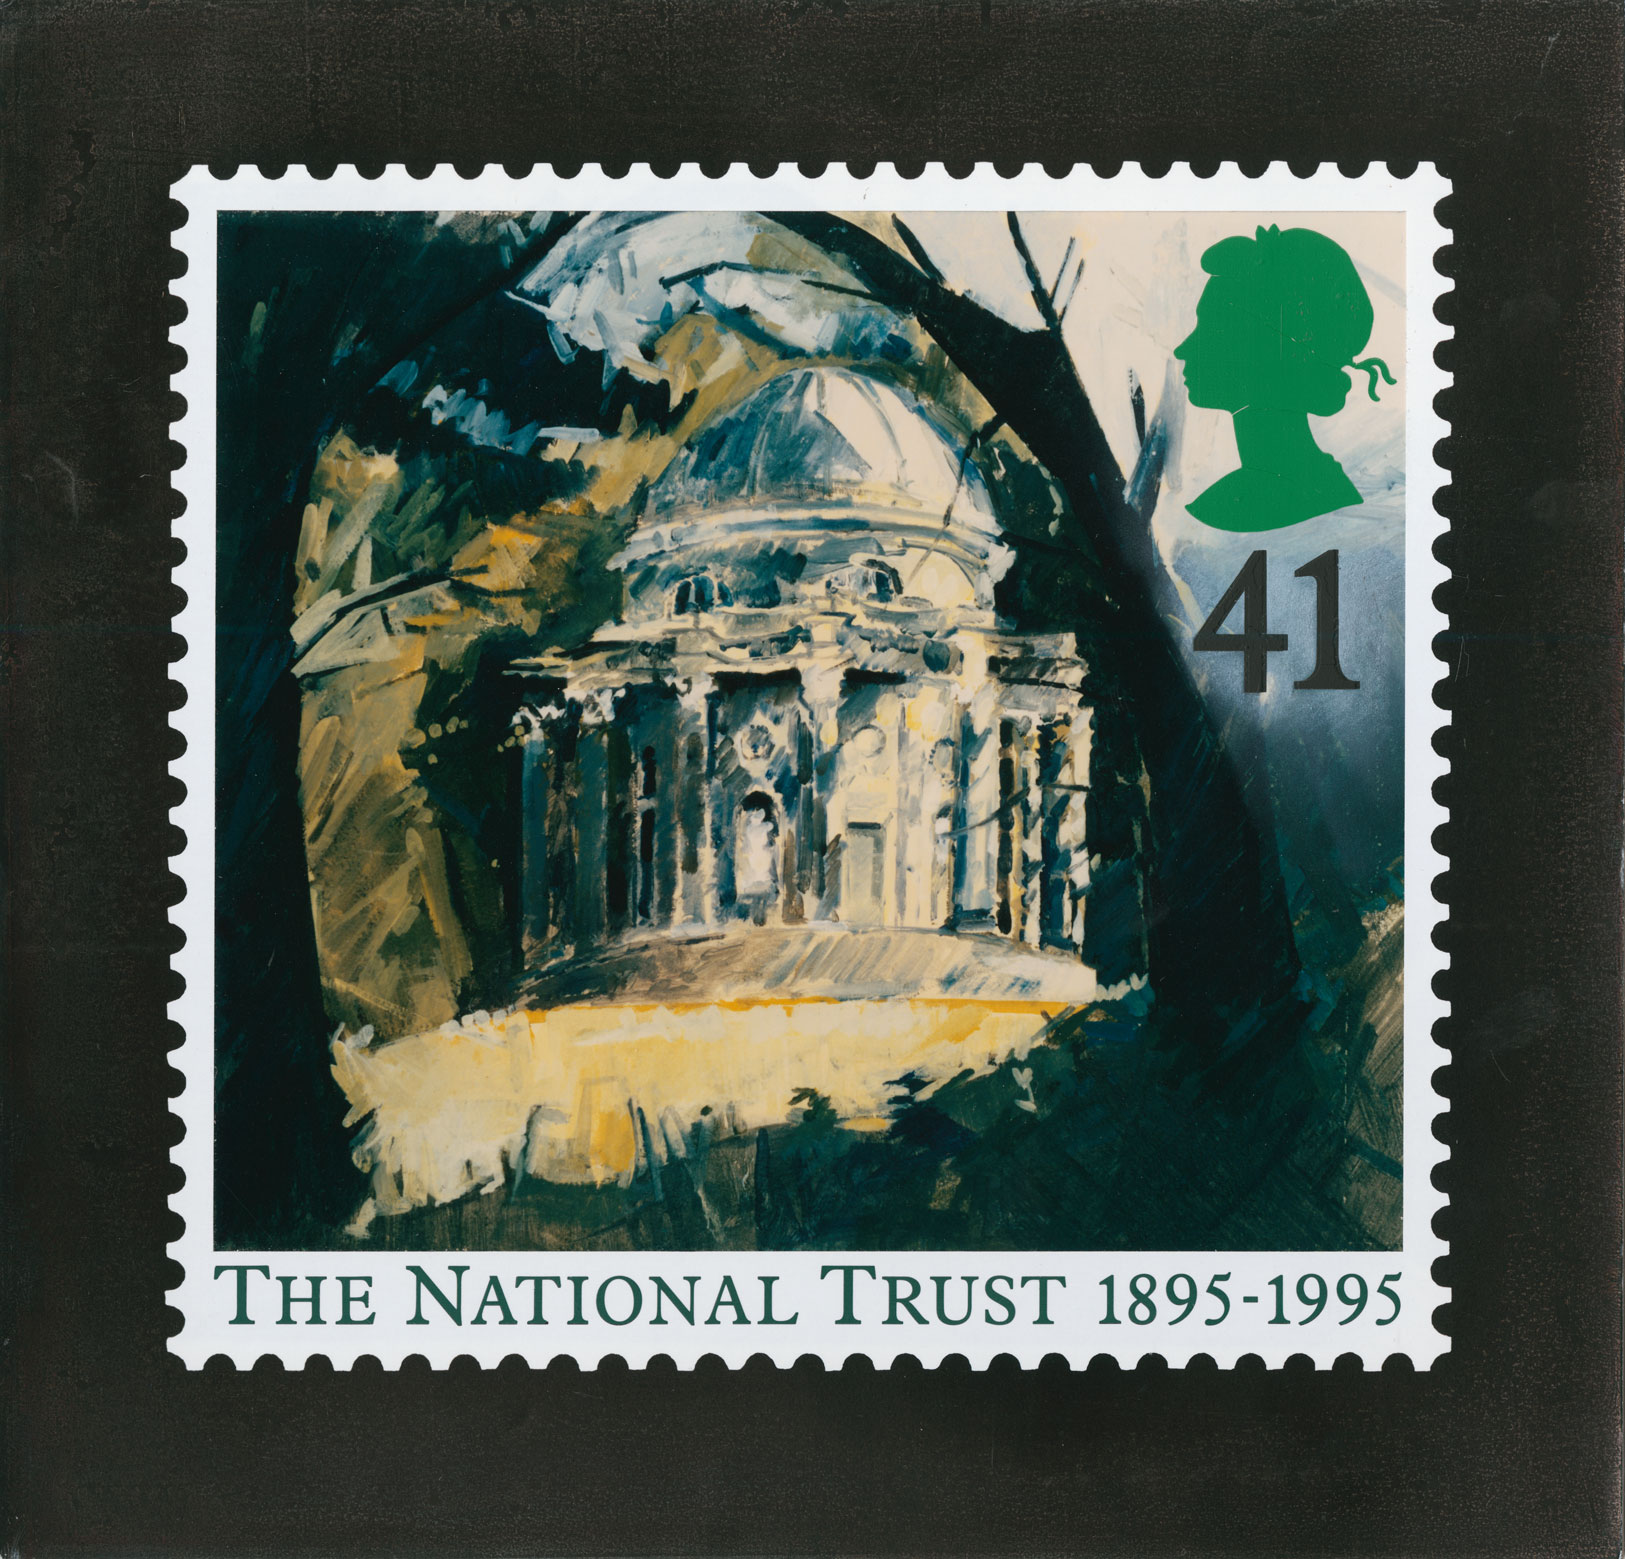 41p stamp that depicts a painting of the temple in the ground of Stourhead with caption and perforation surround.